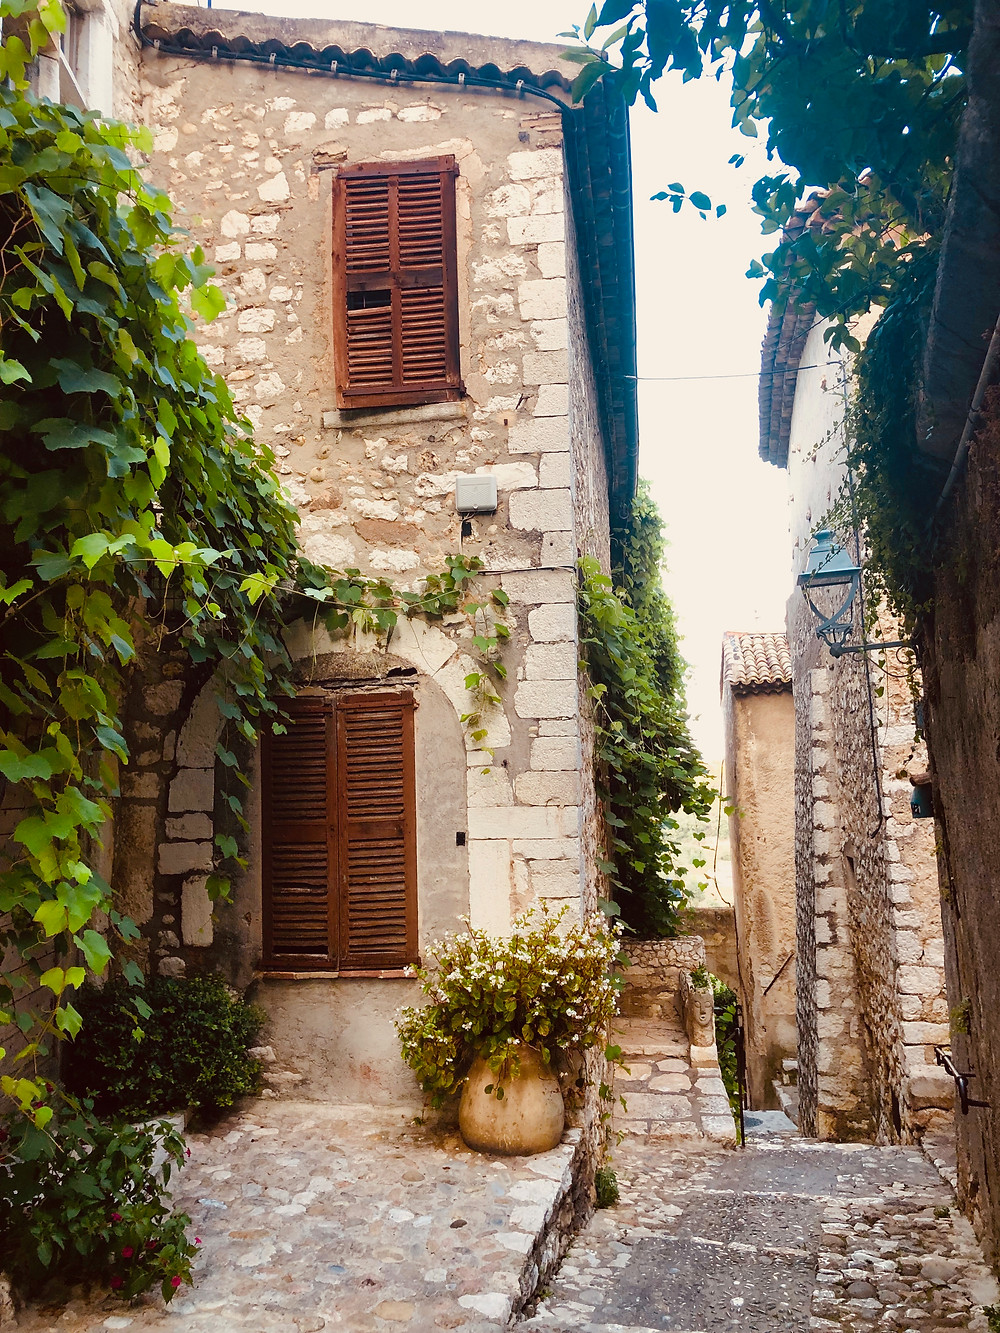 The cobblestone streets of the most beautiful hilltop town in the French Riviera, St. Paul de Vence.